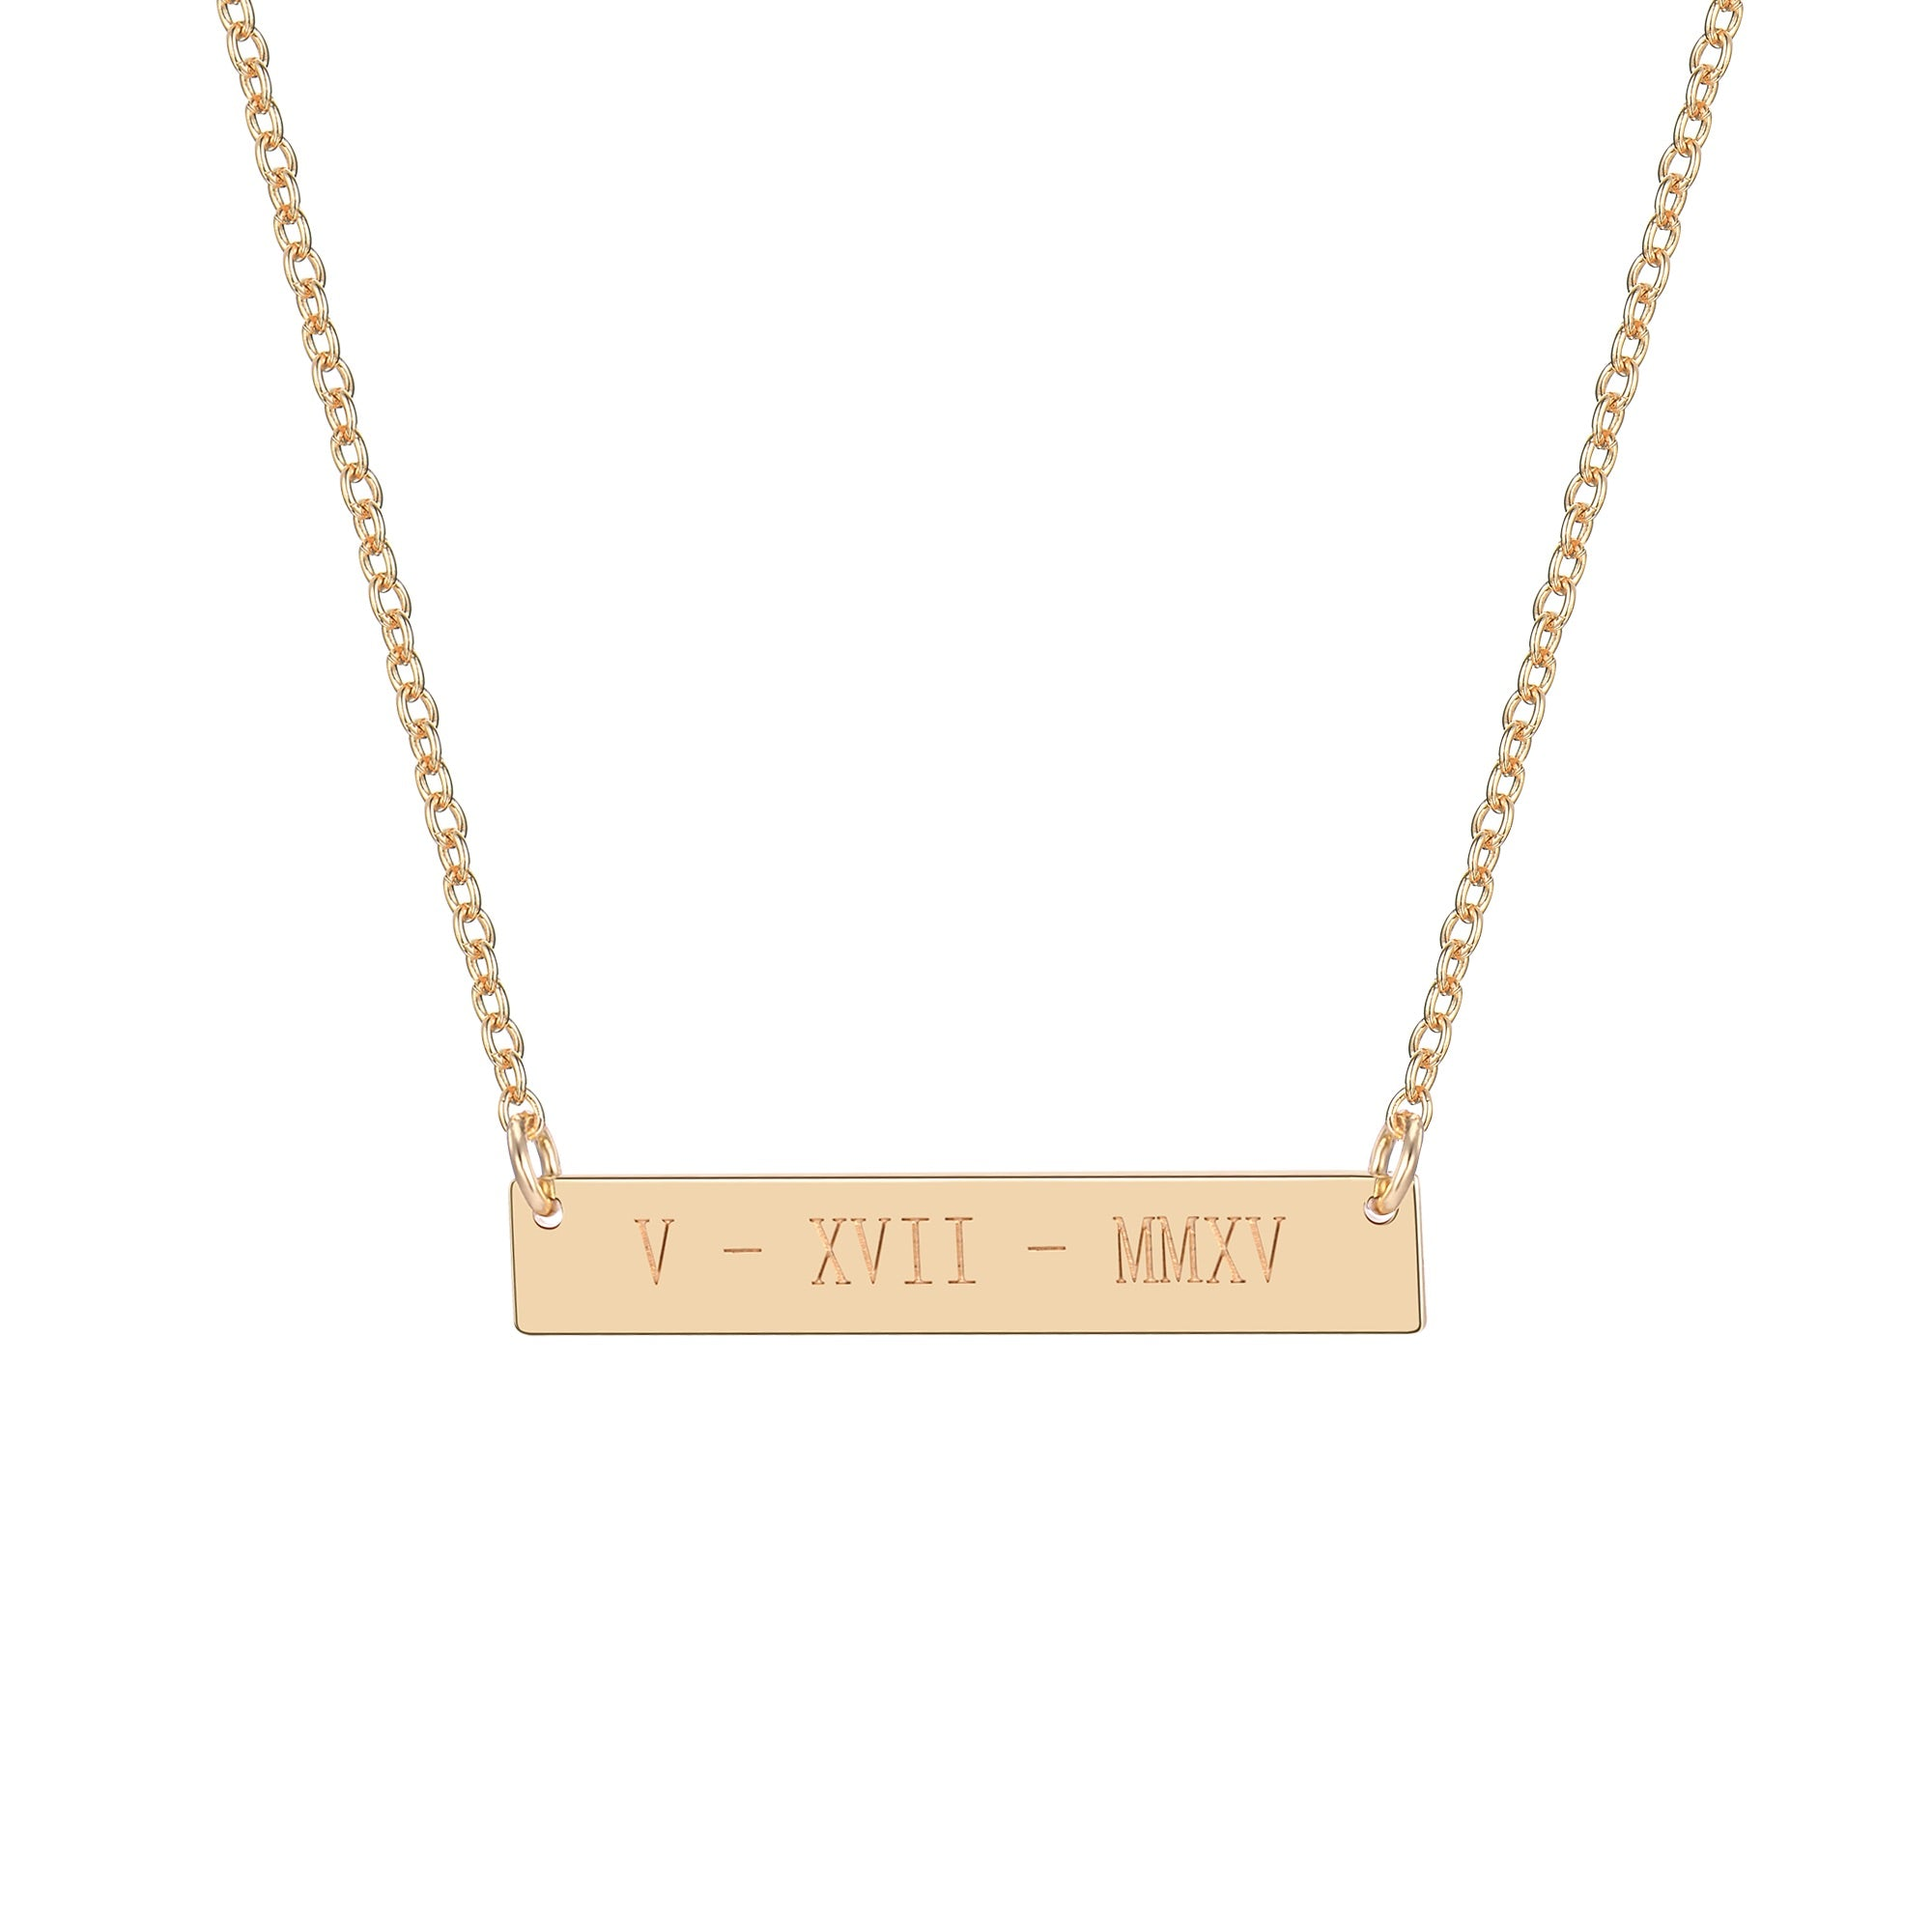 rose pendant img skinny gold necklace product inspirational engraved bar horizontal